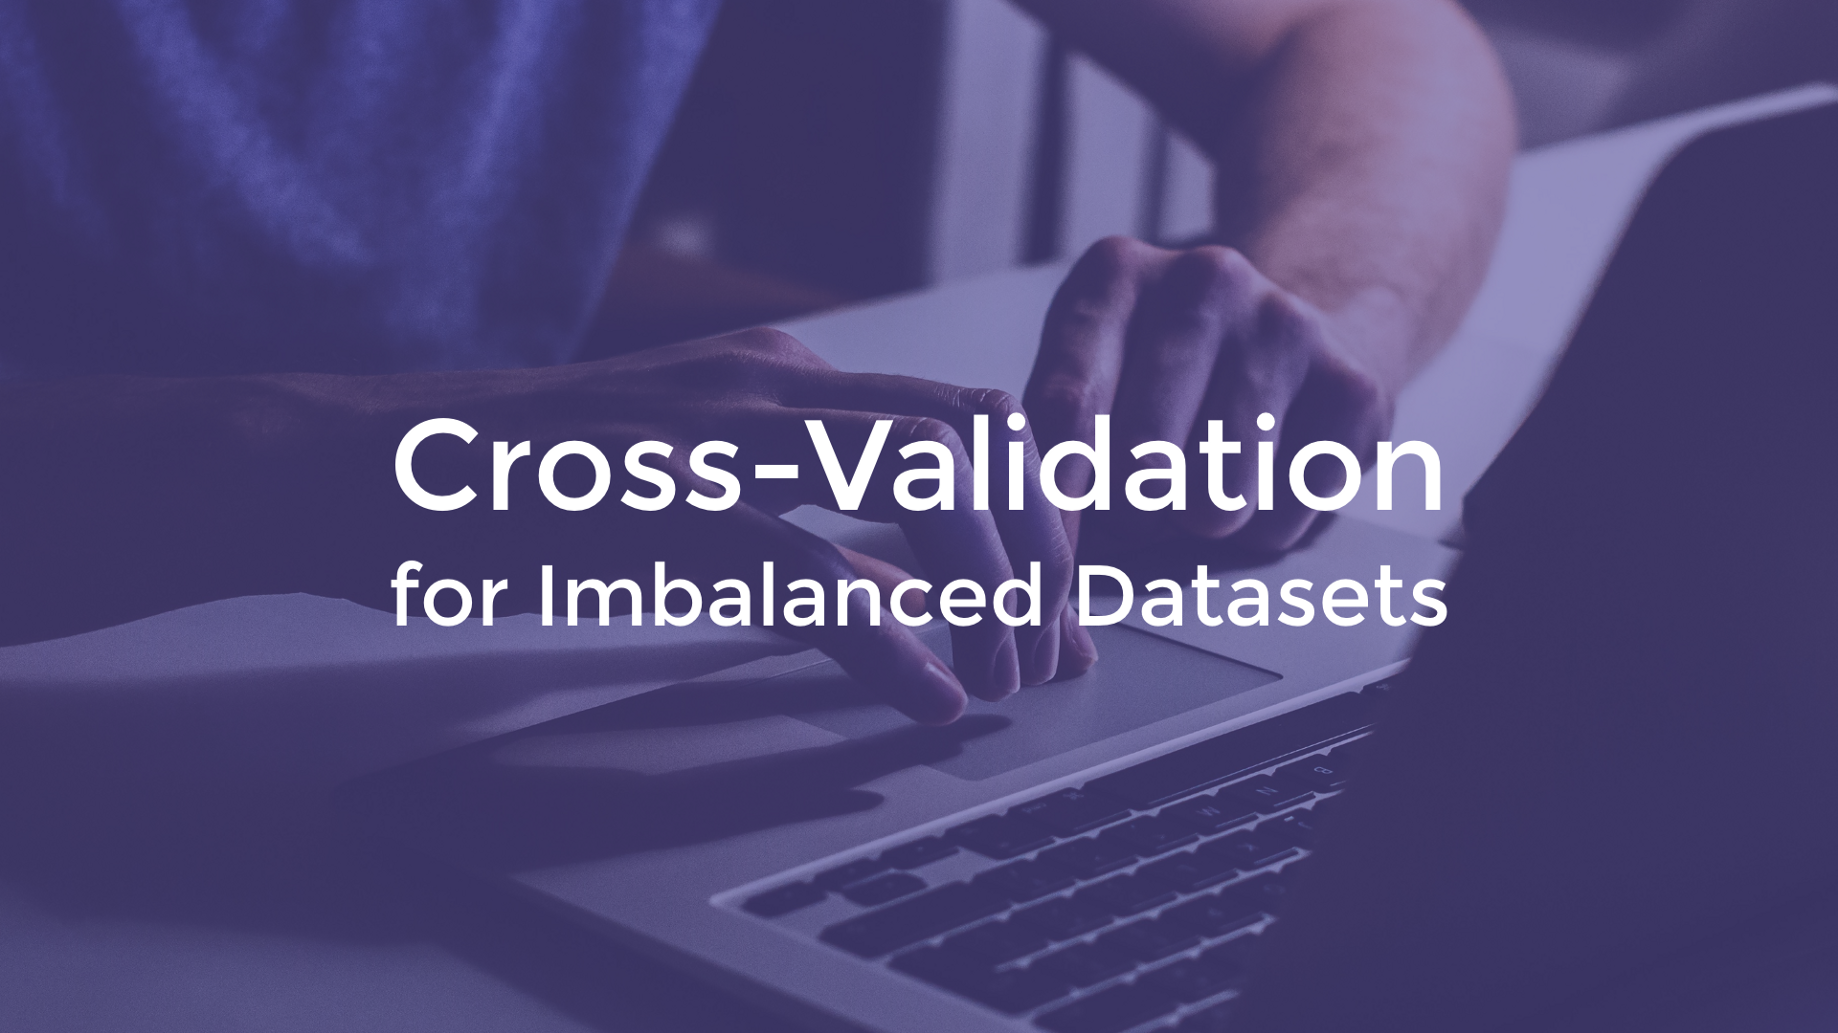 Cross-Validation for Imbalanced Datasets - Lumiata - Medium